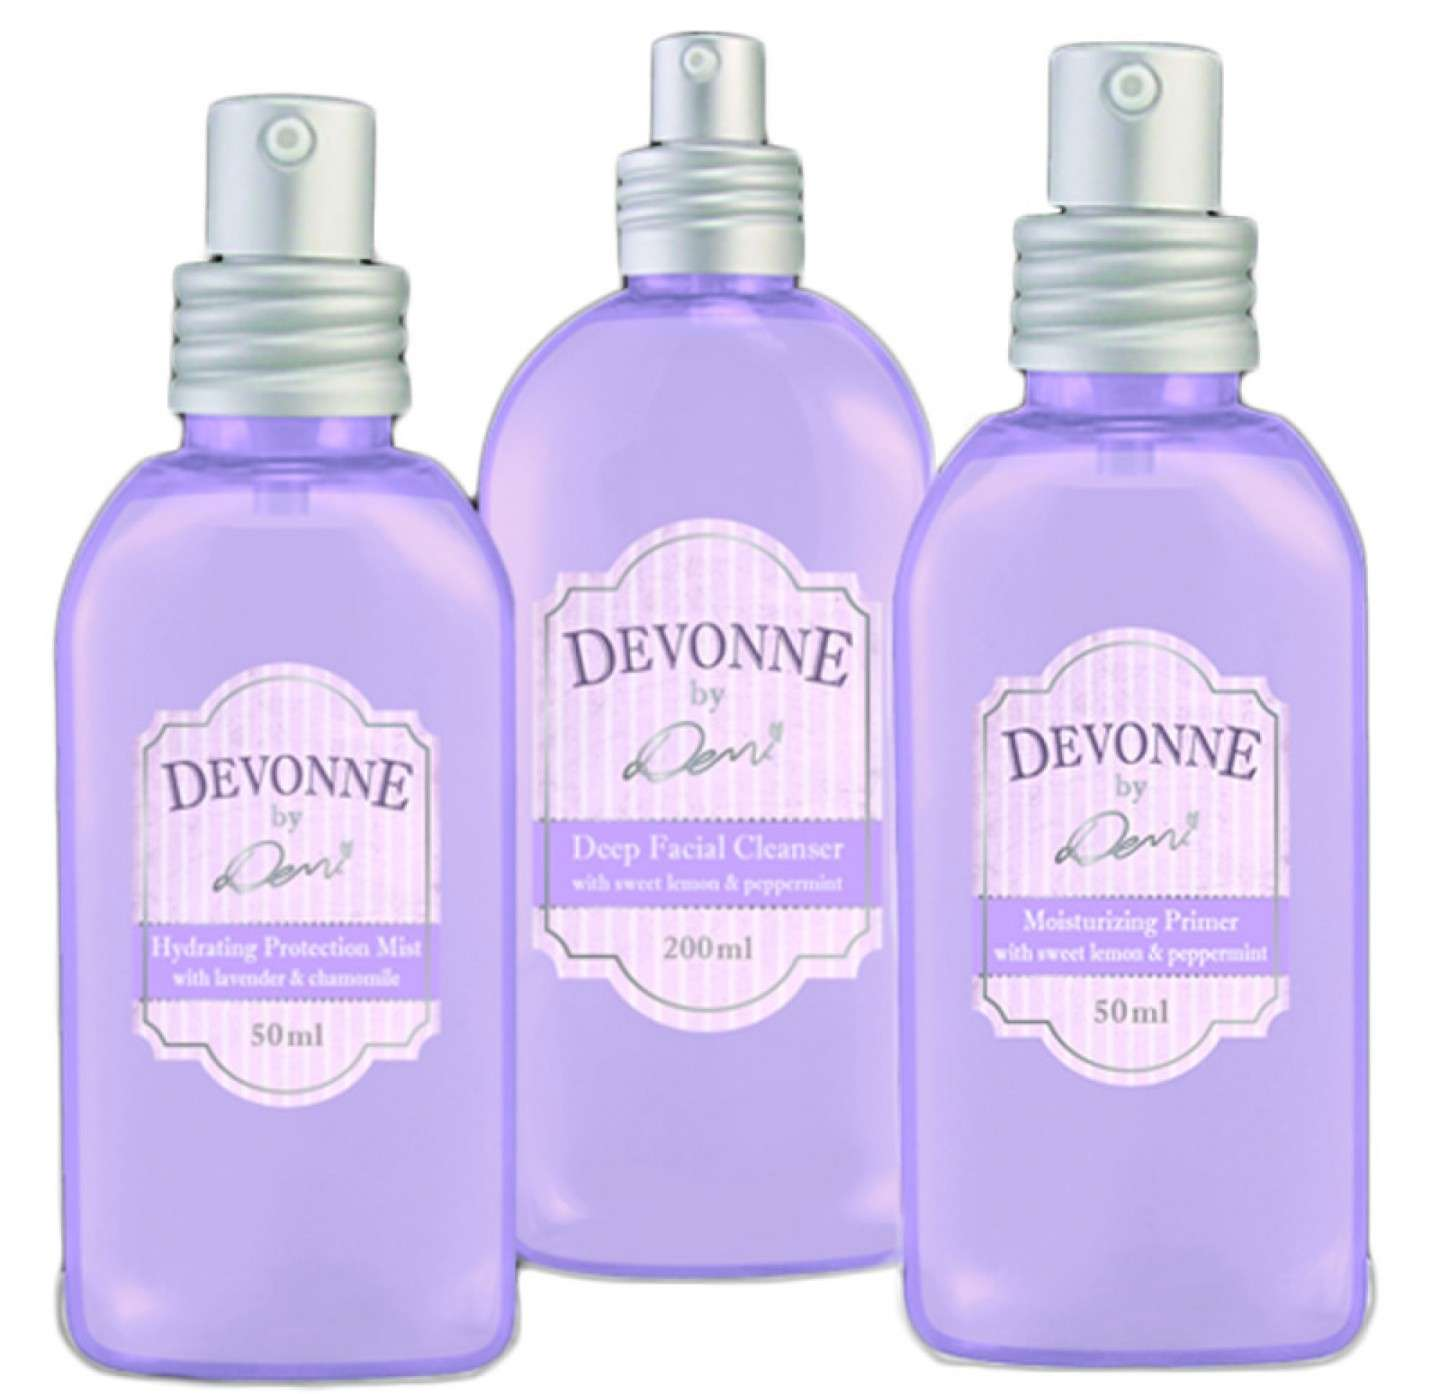 Devonne by Demi, la linea beauty di Demi Lovato